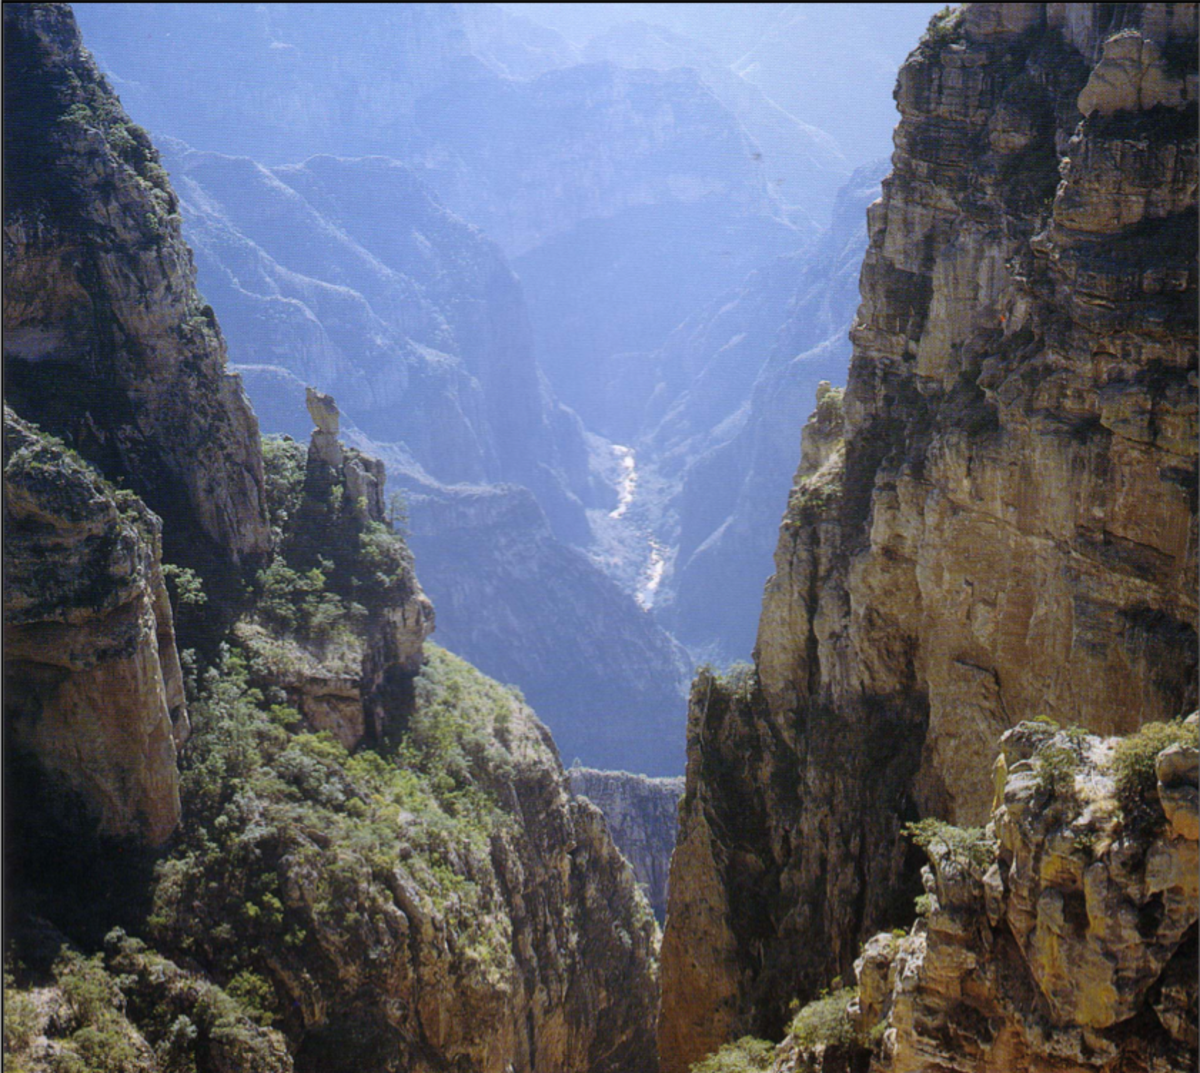 The drive to the bottom of Batopilas Canyon is not for the faint of heart.